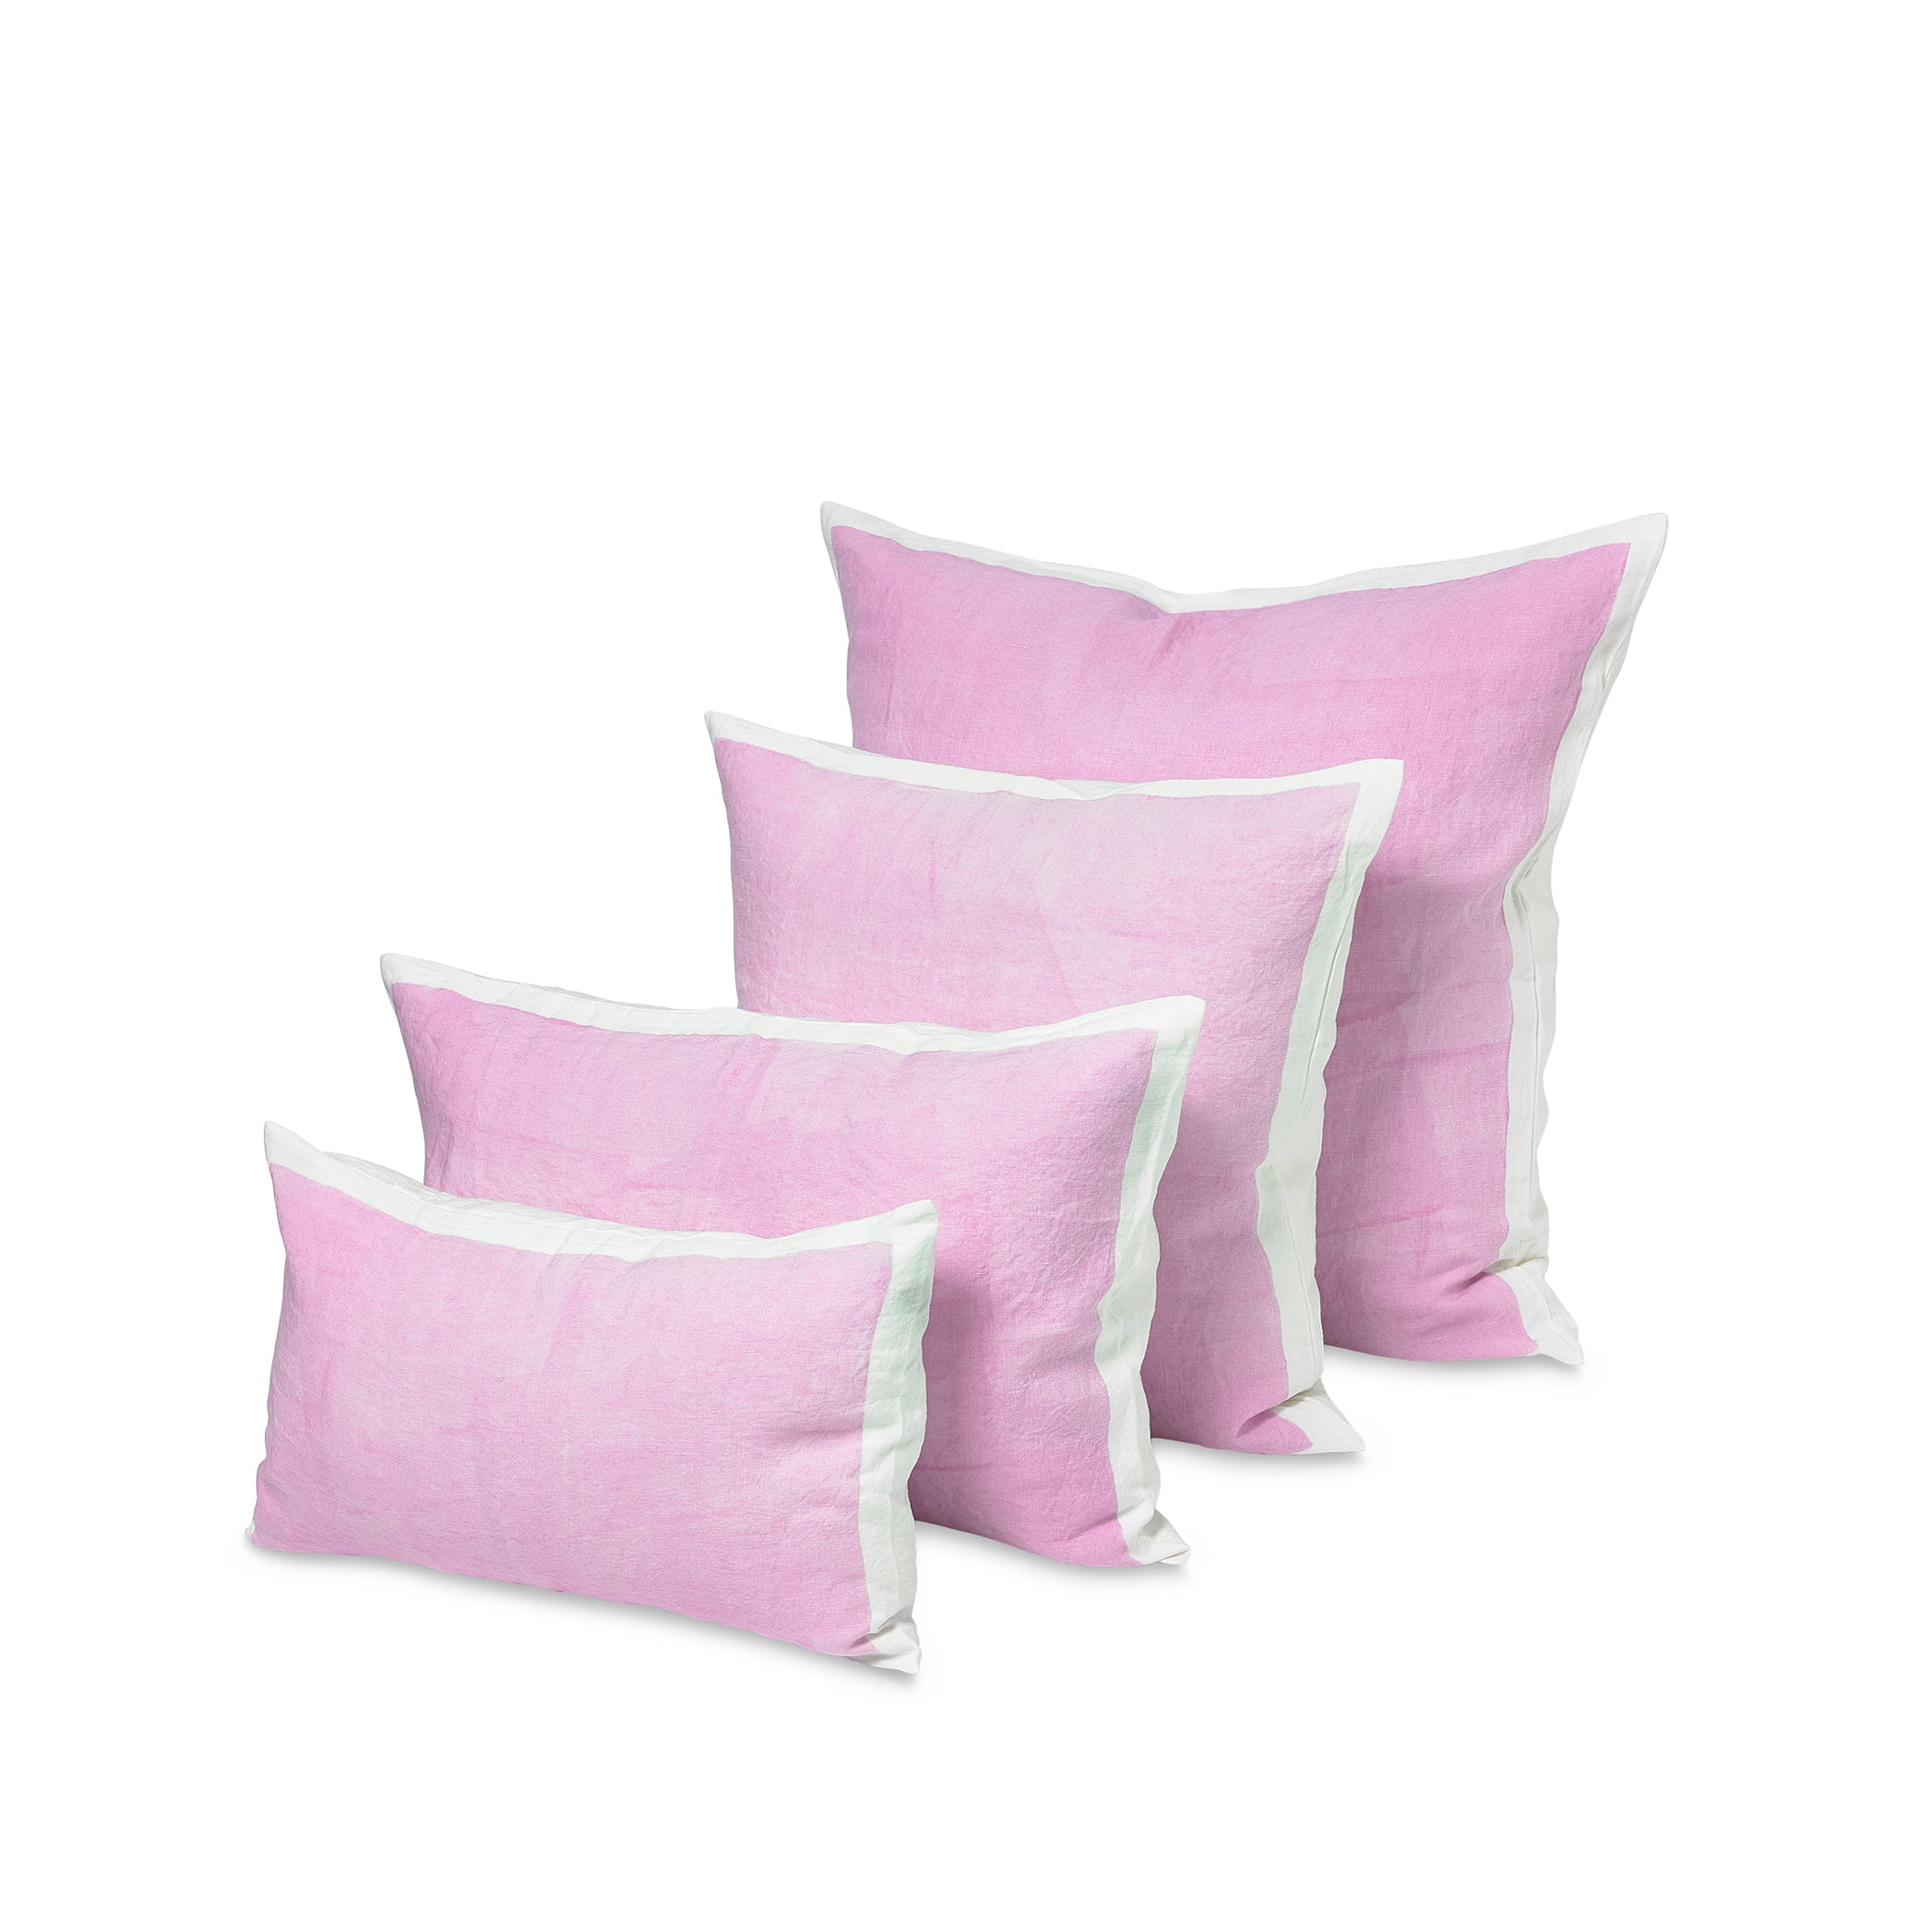 Hand Painted Linen Cushion Cover in Pale Pink, 50cm x 50cm